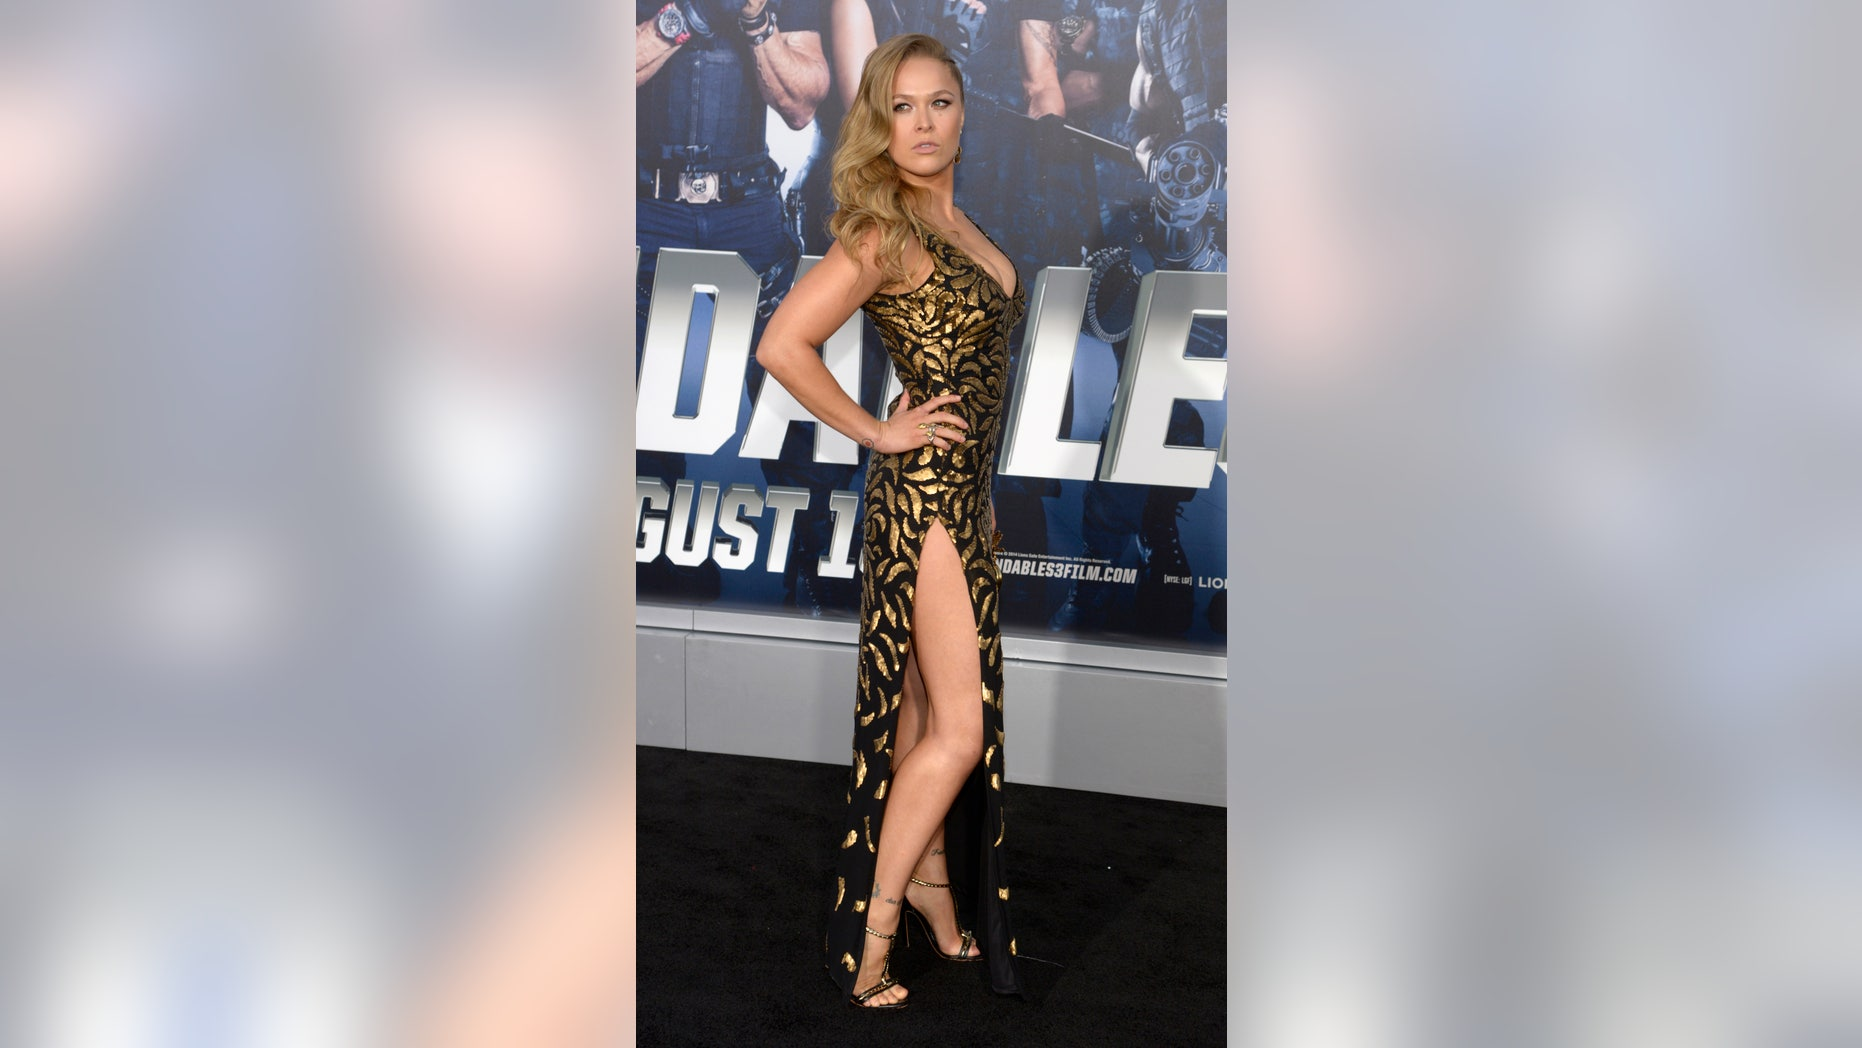 """Cast member Ronda Rousey attends the premiere of the film """"The Expendables 3"""" in Los Angeles August 11, 2014."""